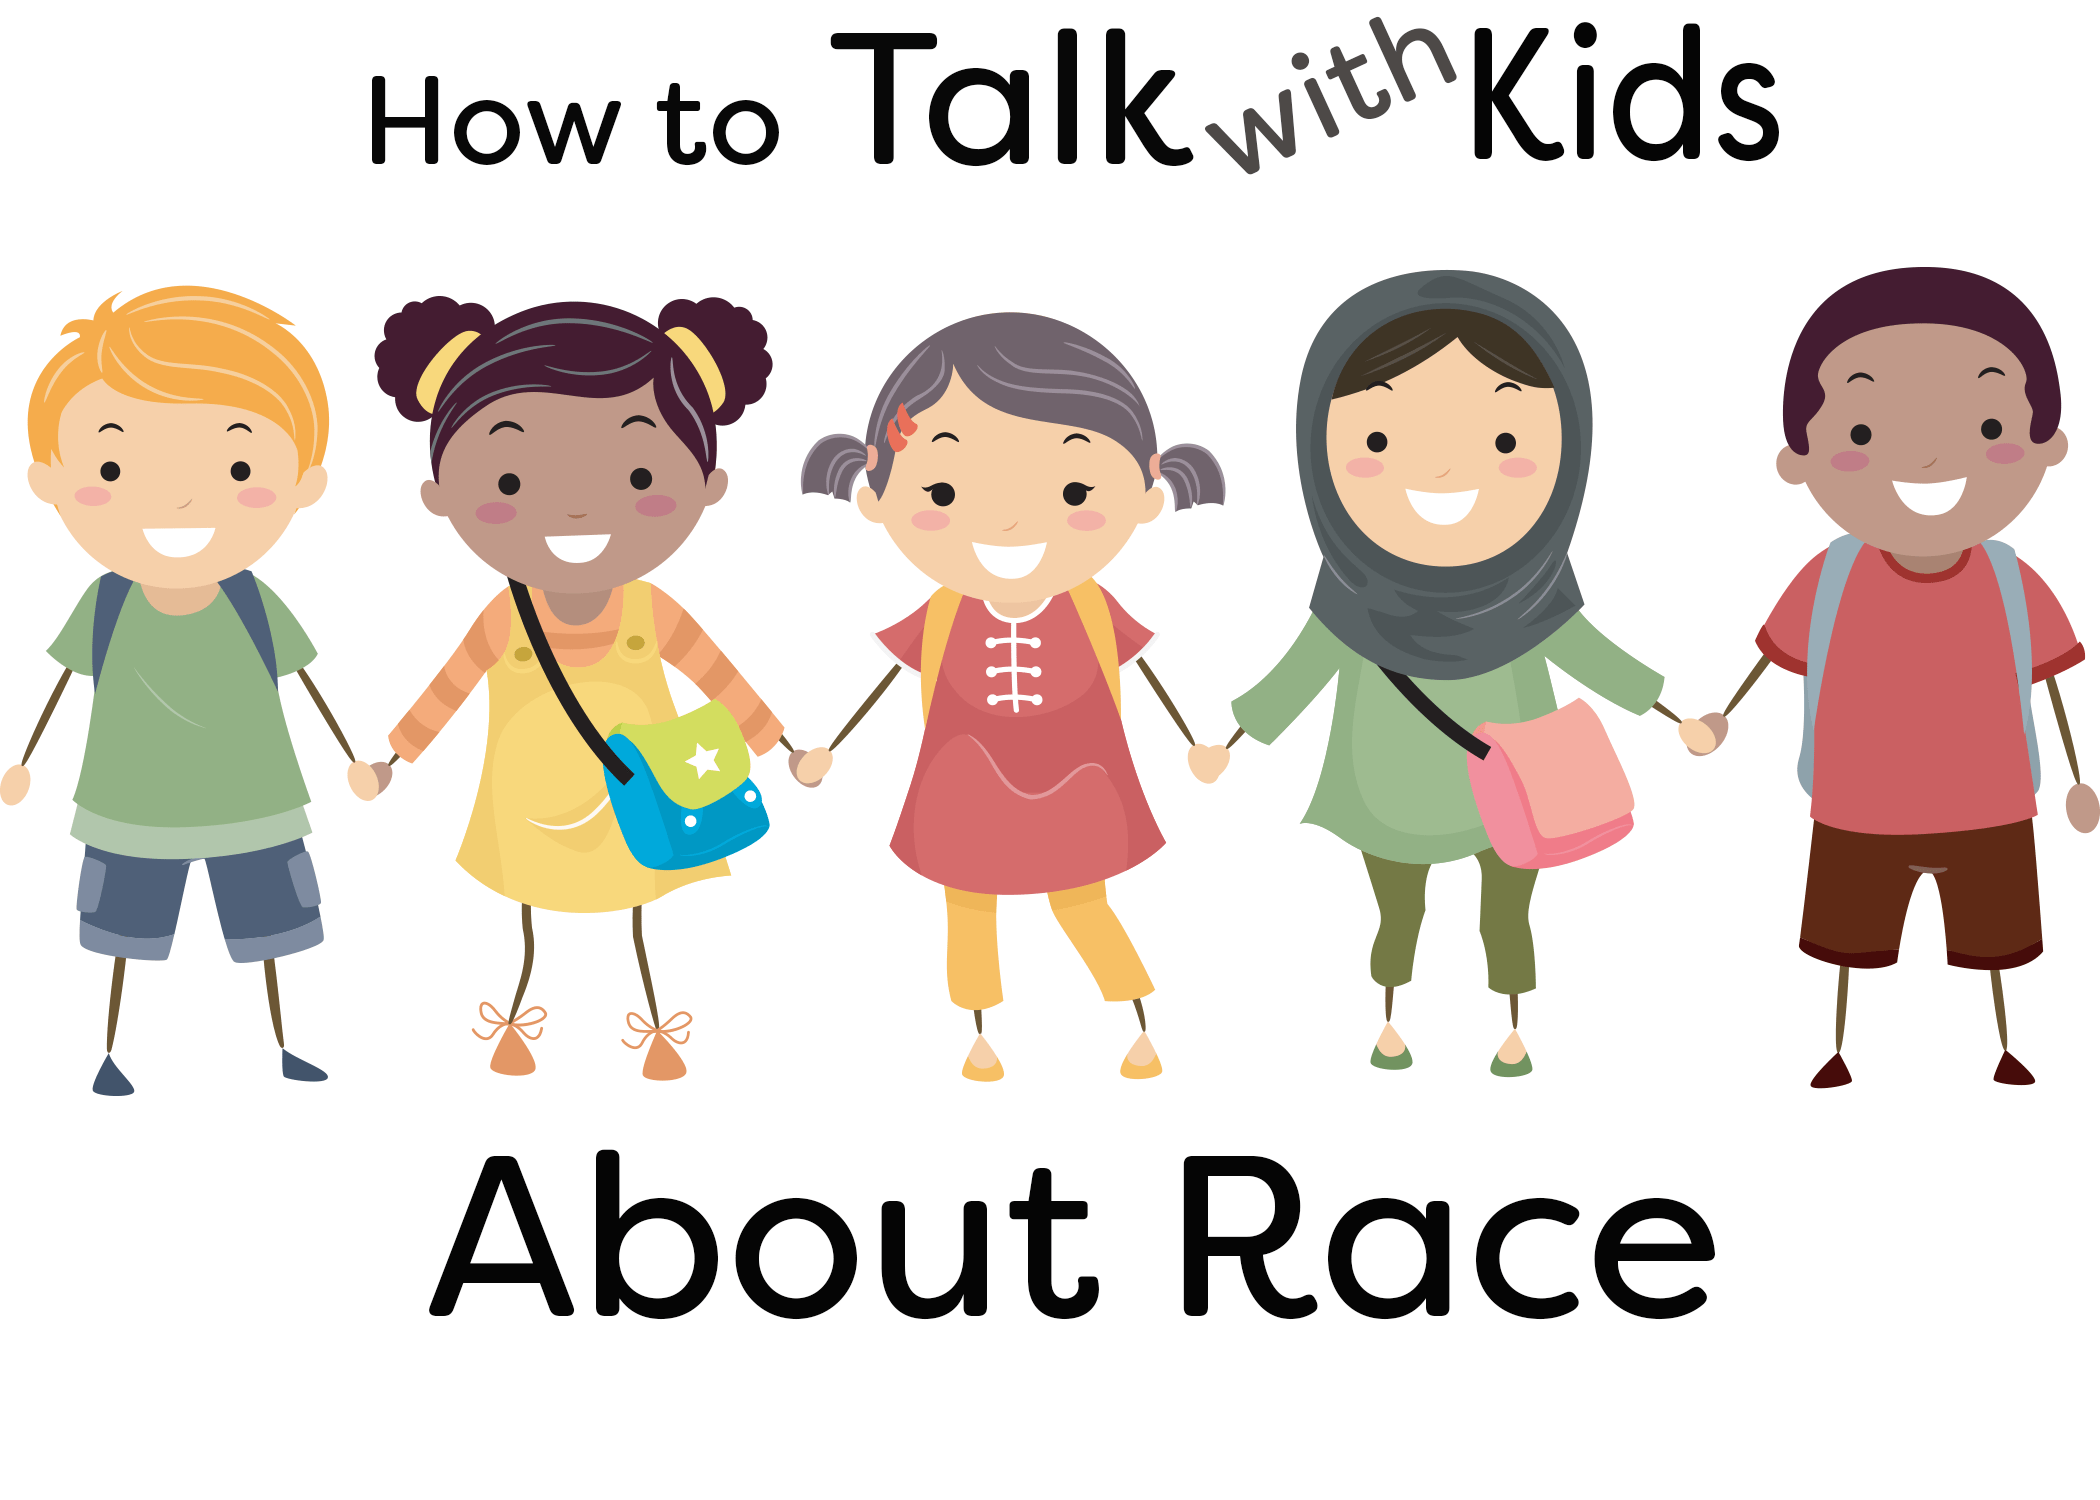 Race clipart children's. How to talk with